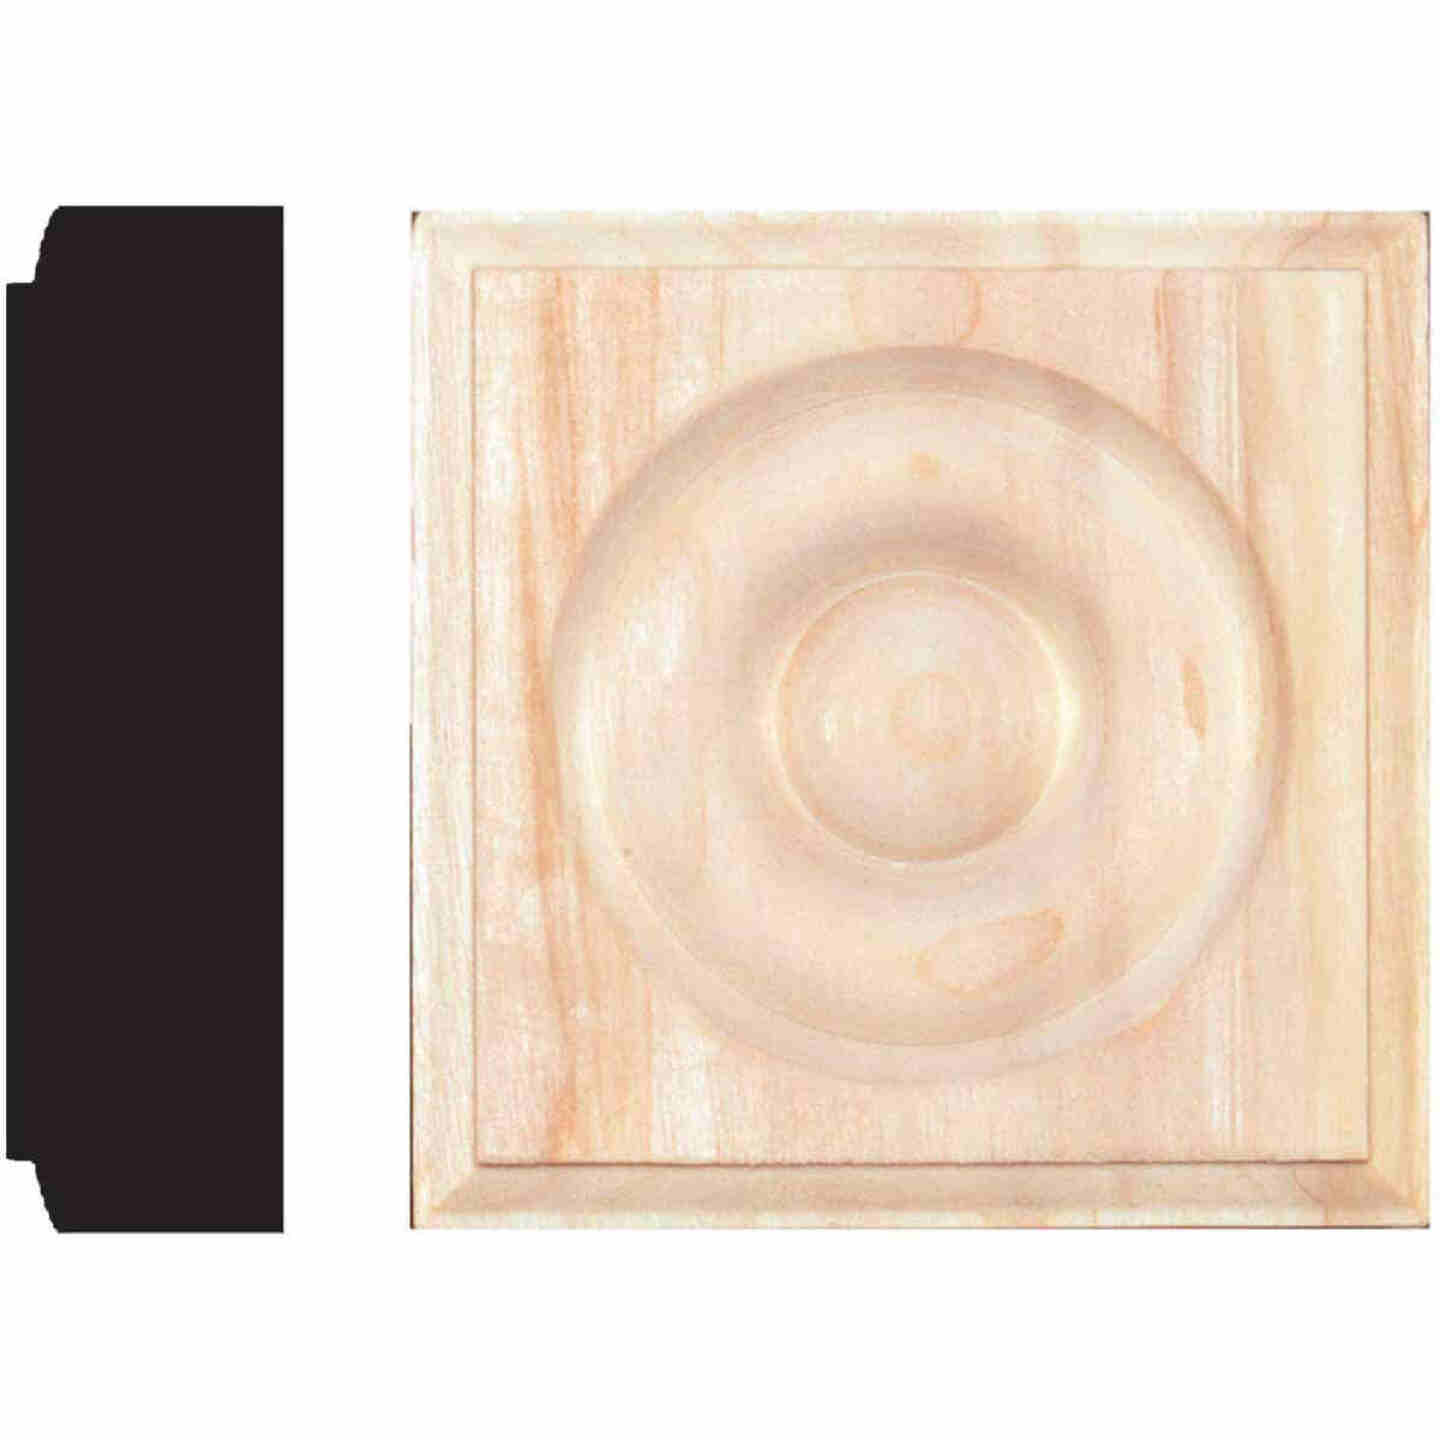 House of Fara 7/8 In. x 3-1/4 In. Unfinished Hardwood Rosette Block Image 1